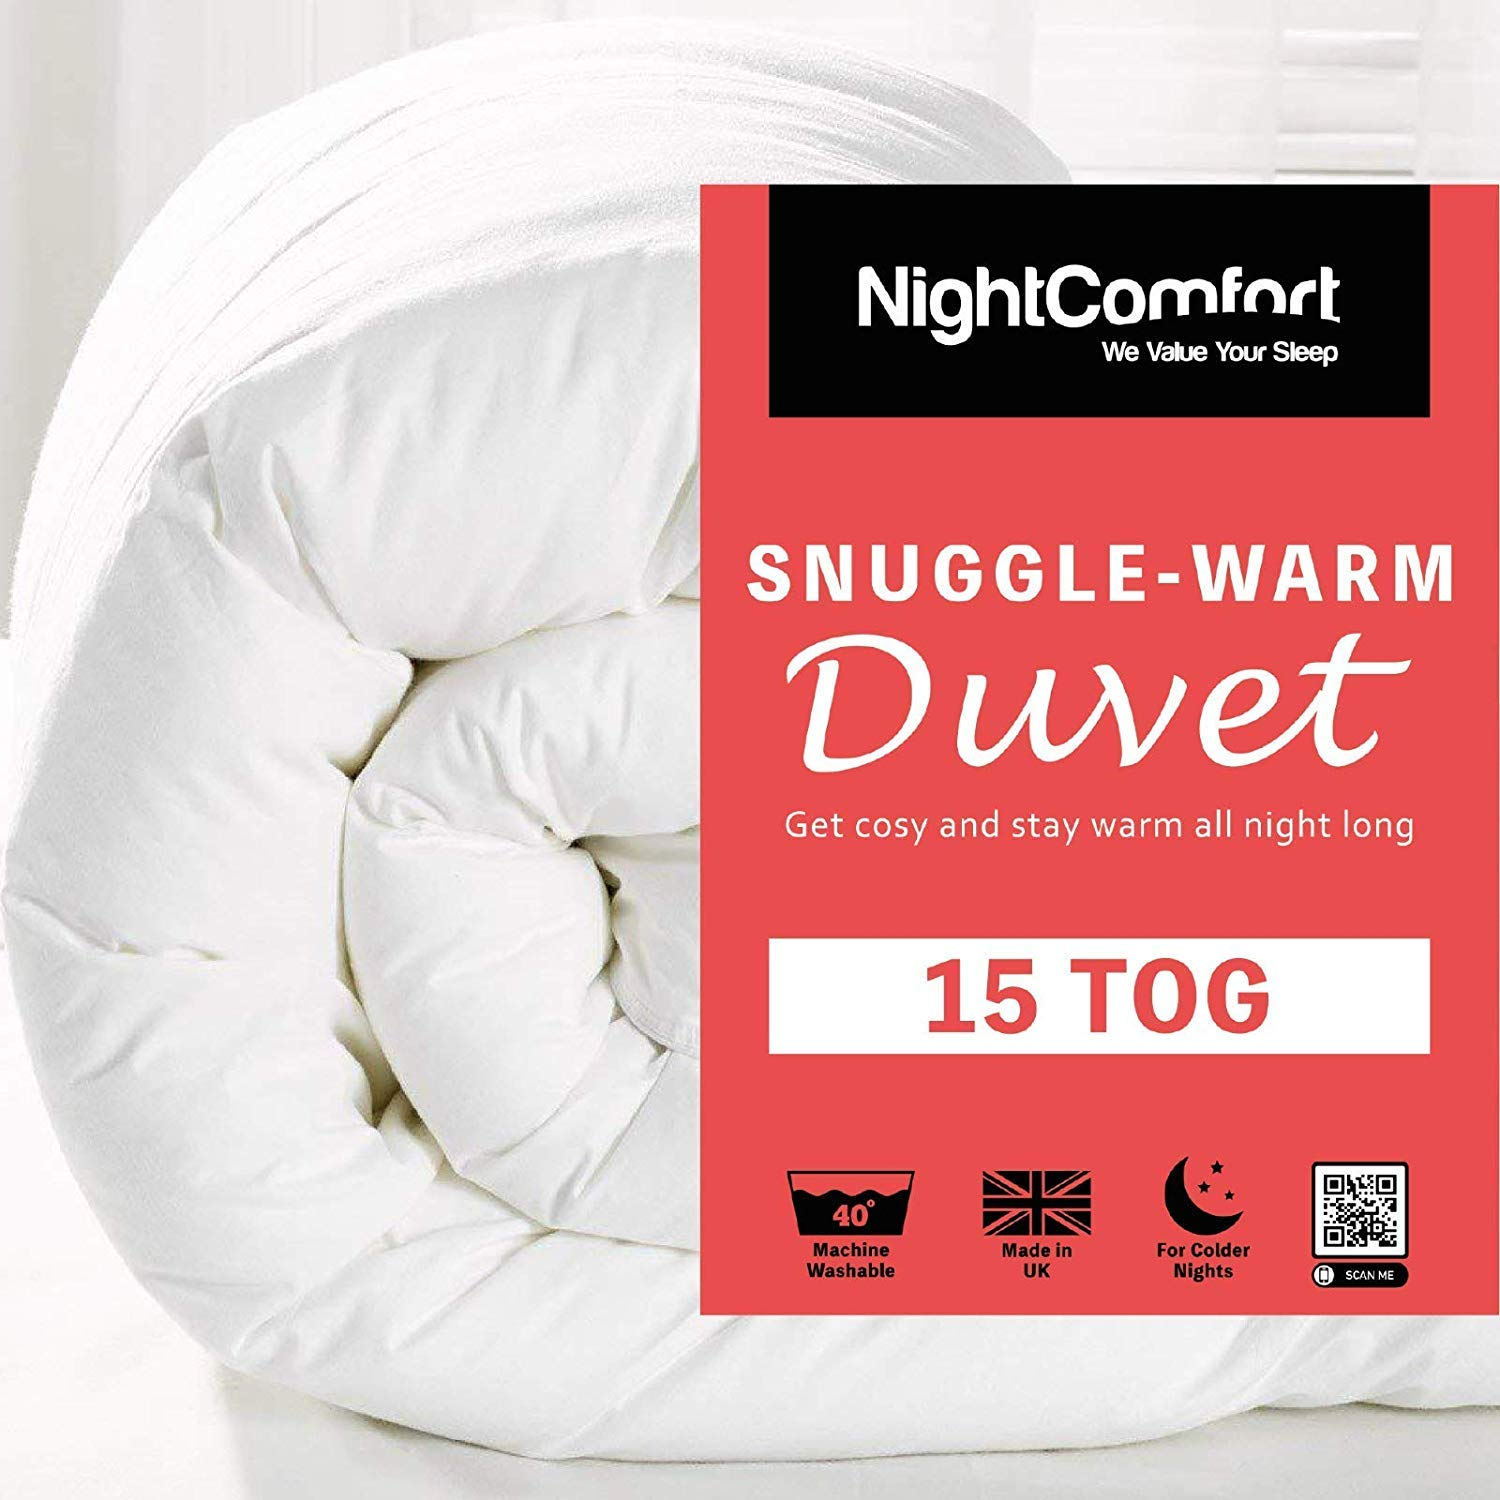 King Anti Allergy 13.5 Tog Duvet Quilt Hollowfibre Filled Corovin Thick Warm /& Cosy Made In UK